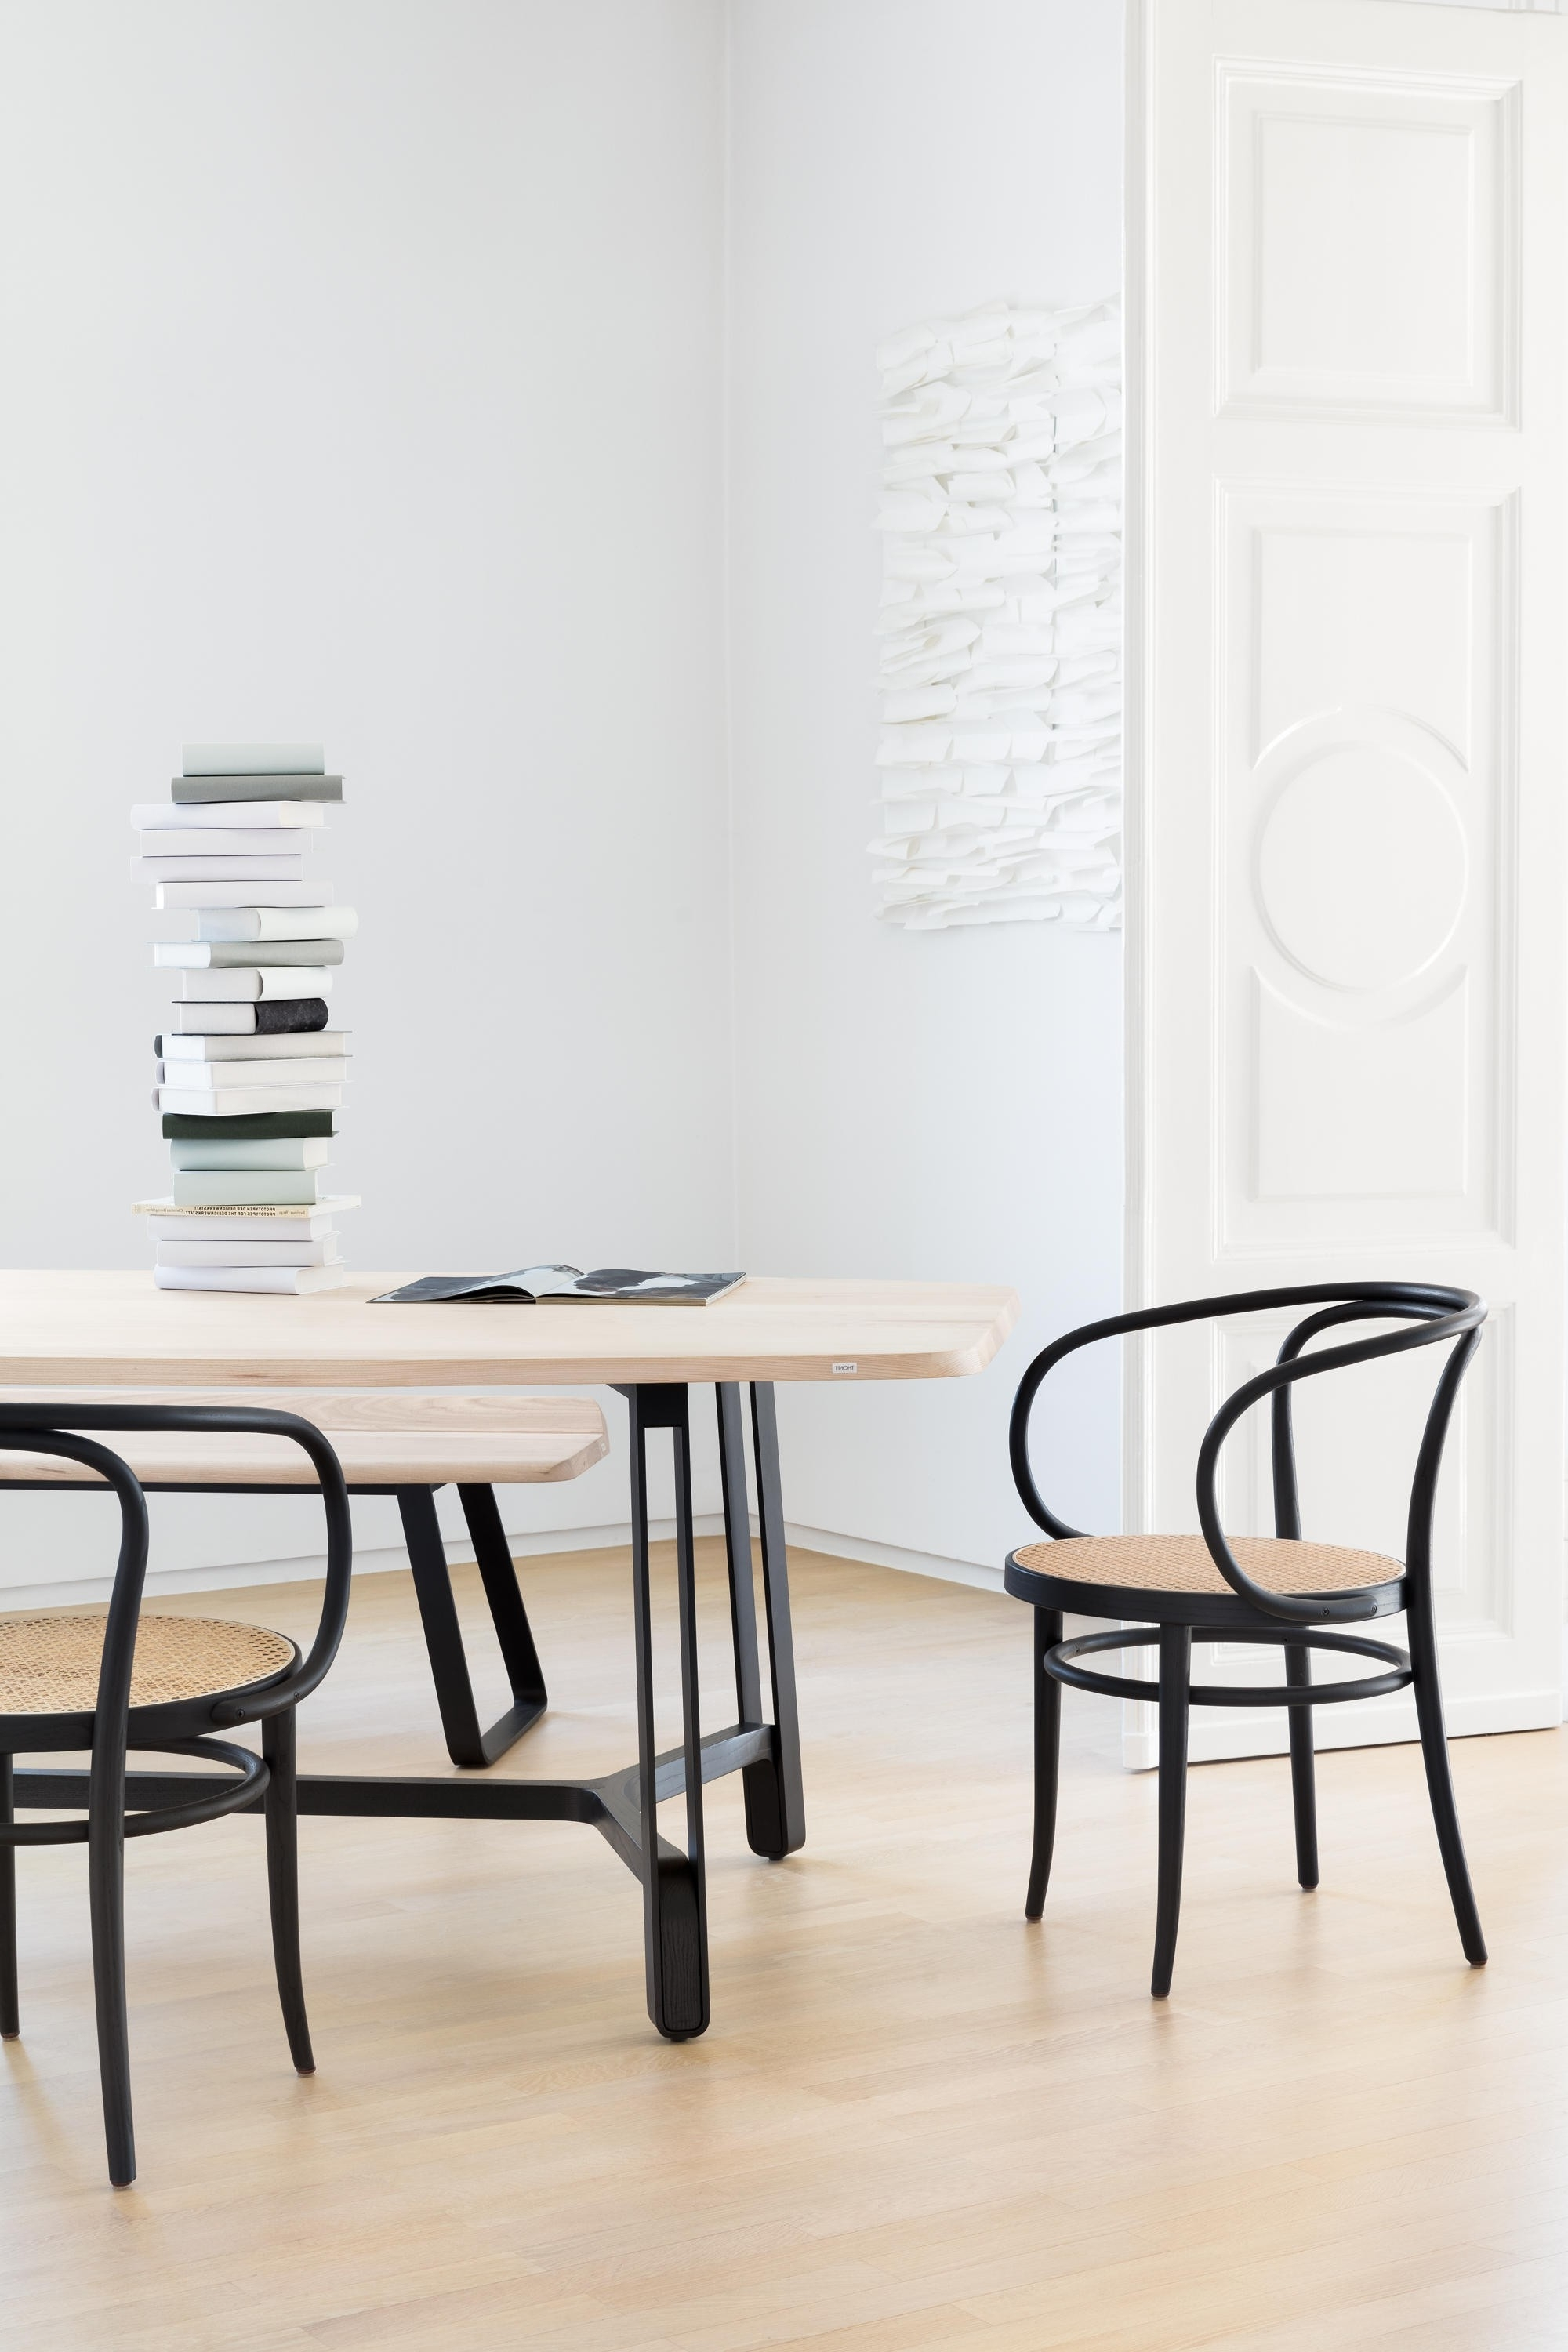 Lazio Dining Tables Intended For 2018 Lazio Dining Table New S 1092 Dining Tables From Thonet (View 11 of 25)